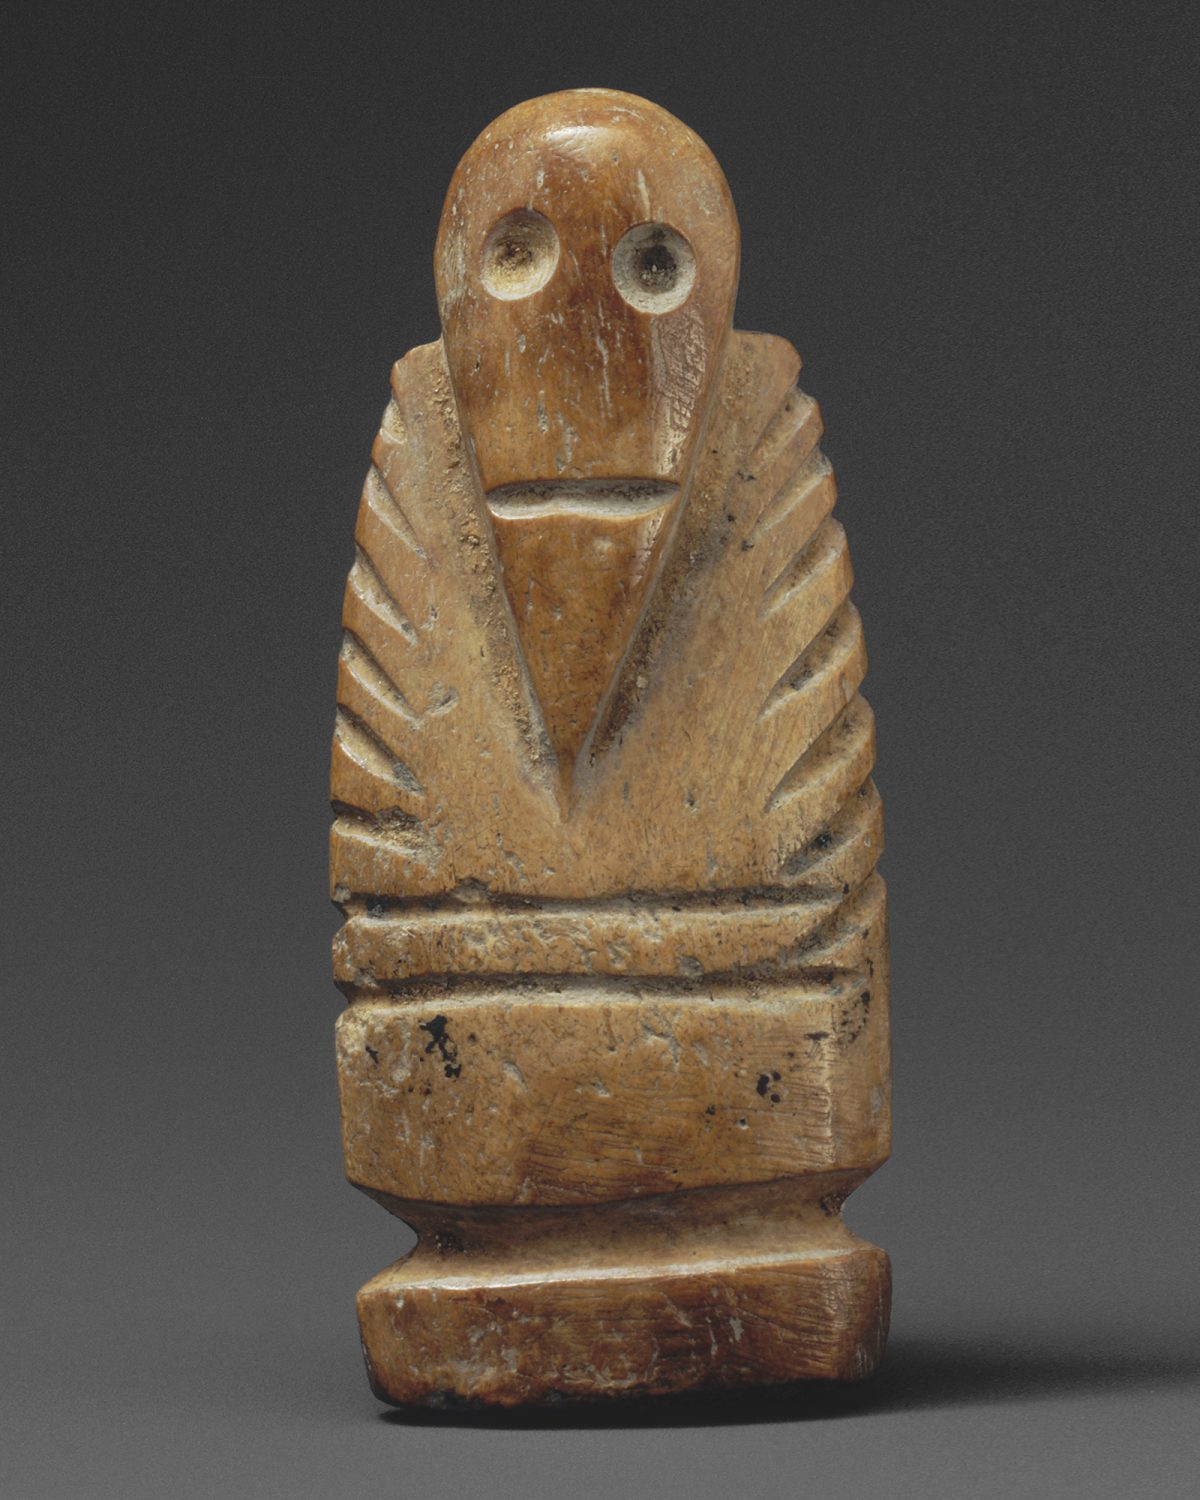 Object of the Week: Amulet in Shape of A Human Figure